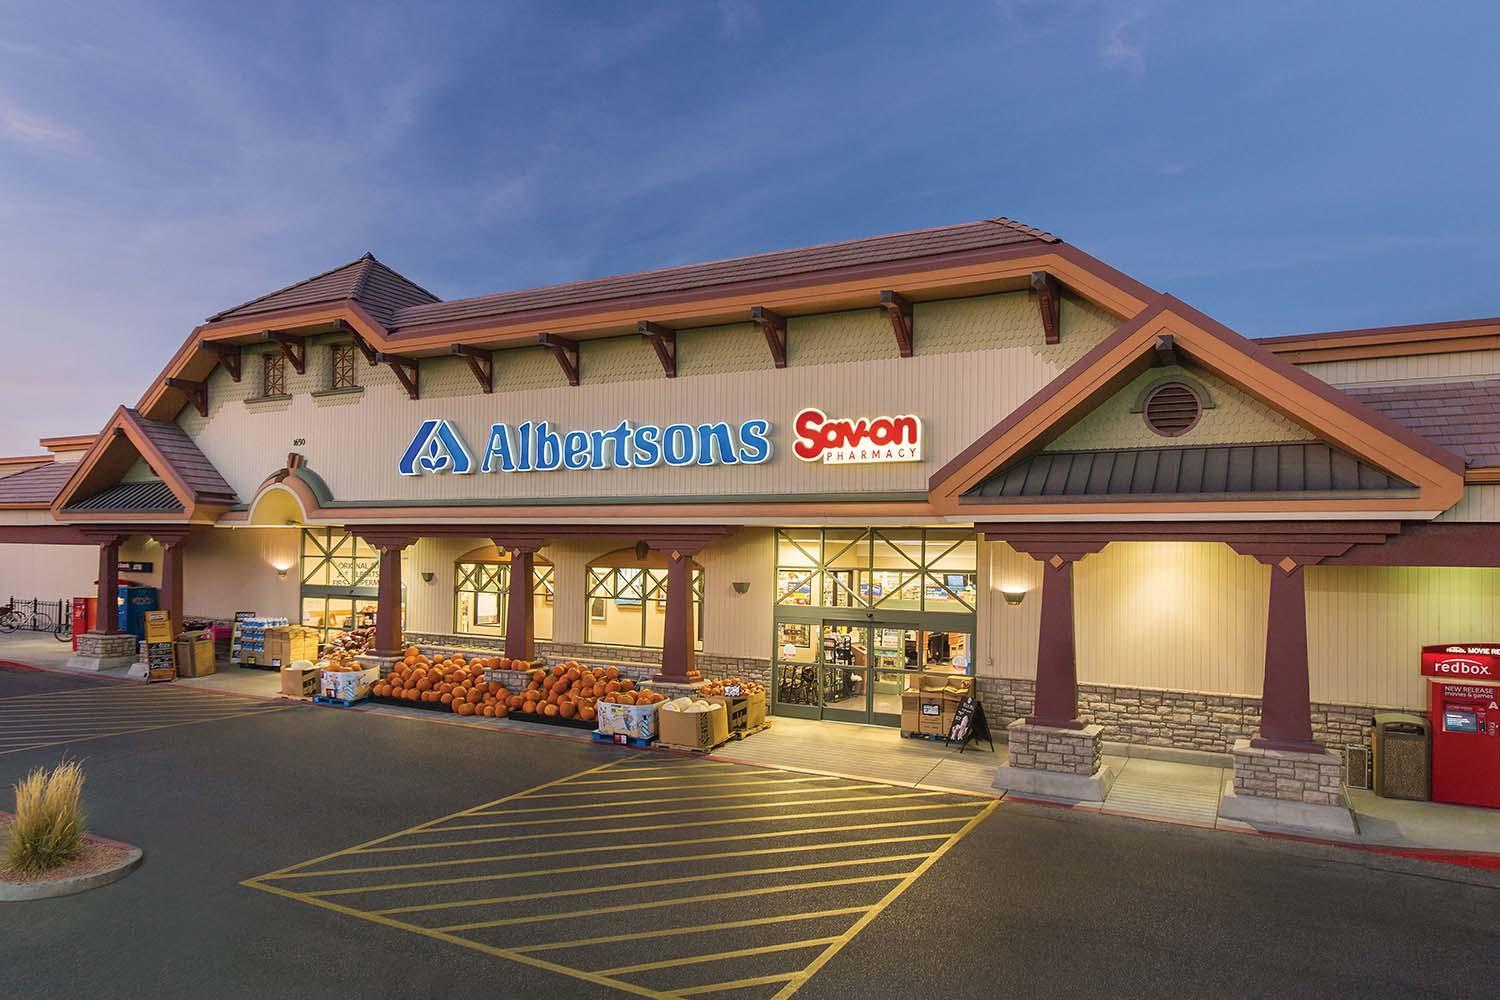 Albertsons Store Front Picture - 3130 W Carefree Highway in Phoenix AZ